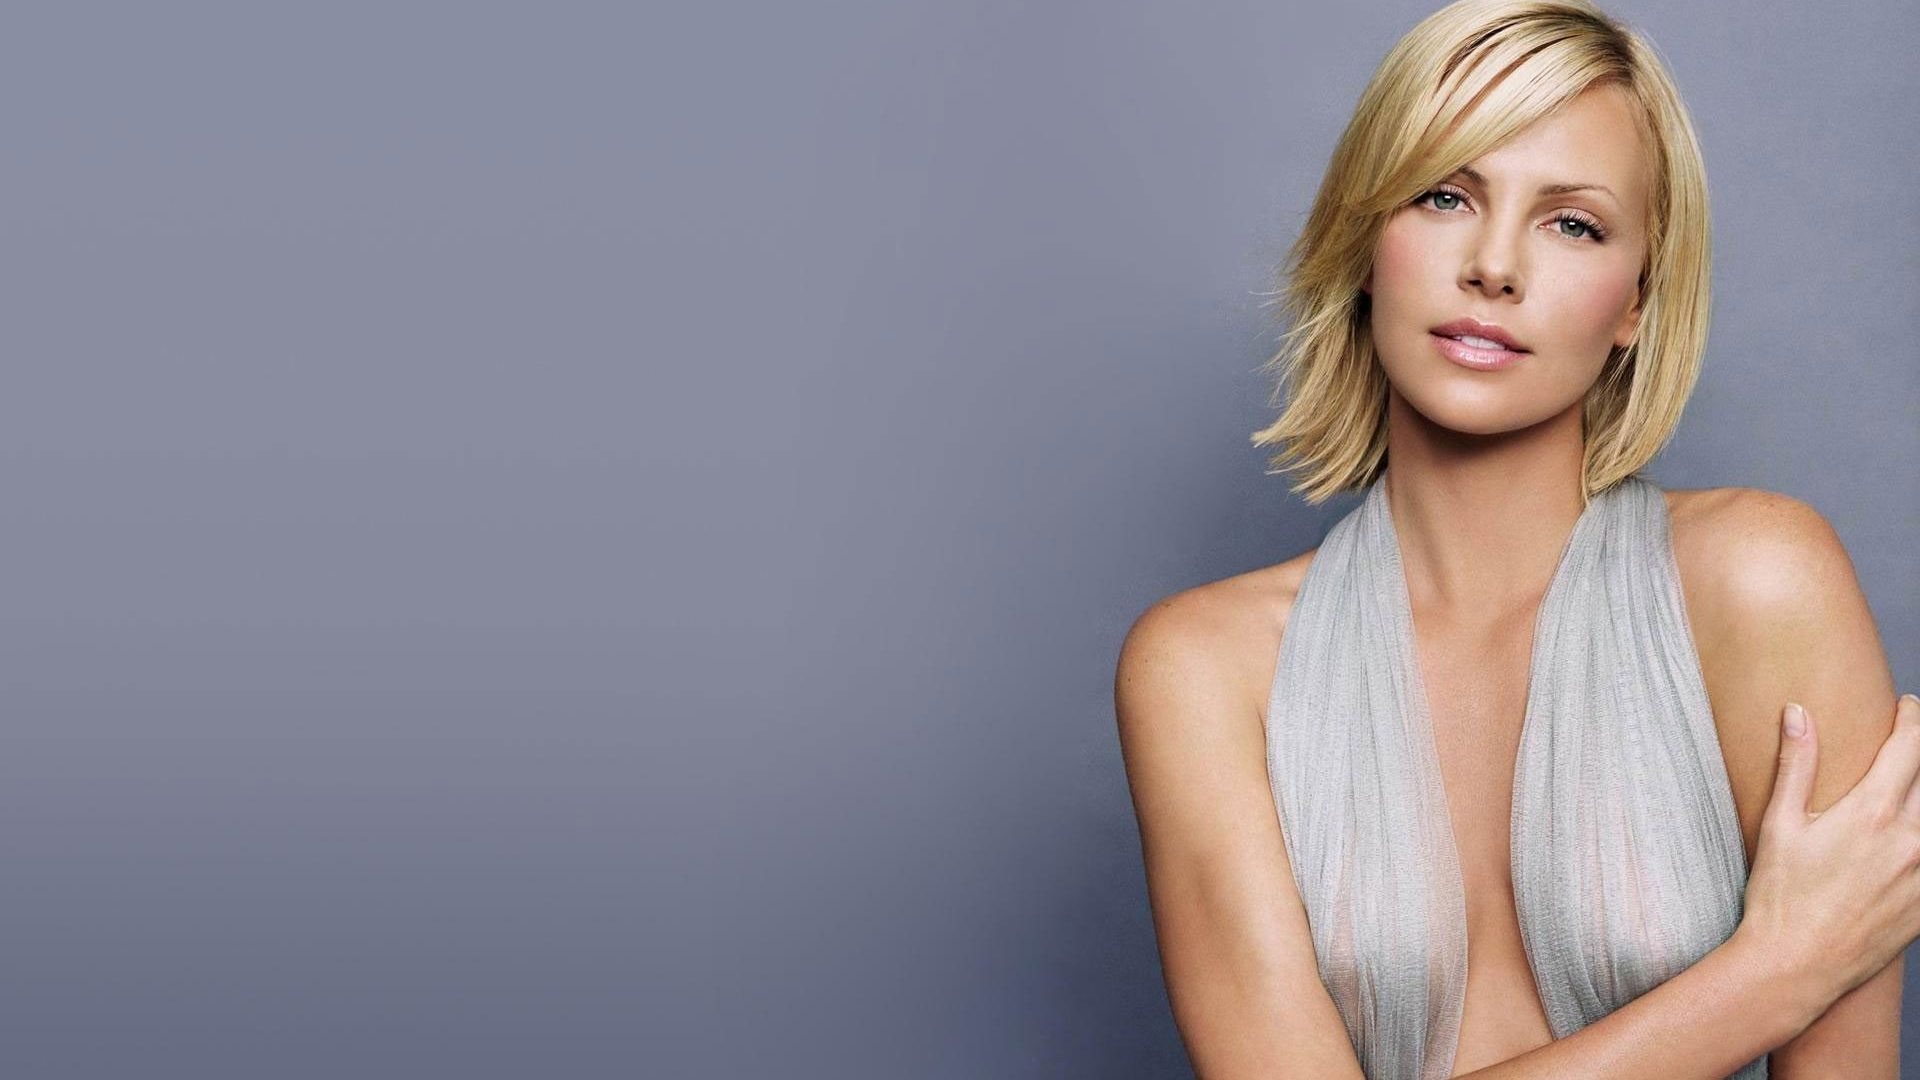 1920x1080 - Charlize Theron Wallpapers 24